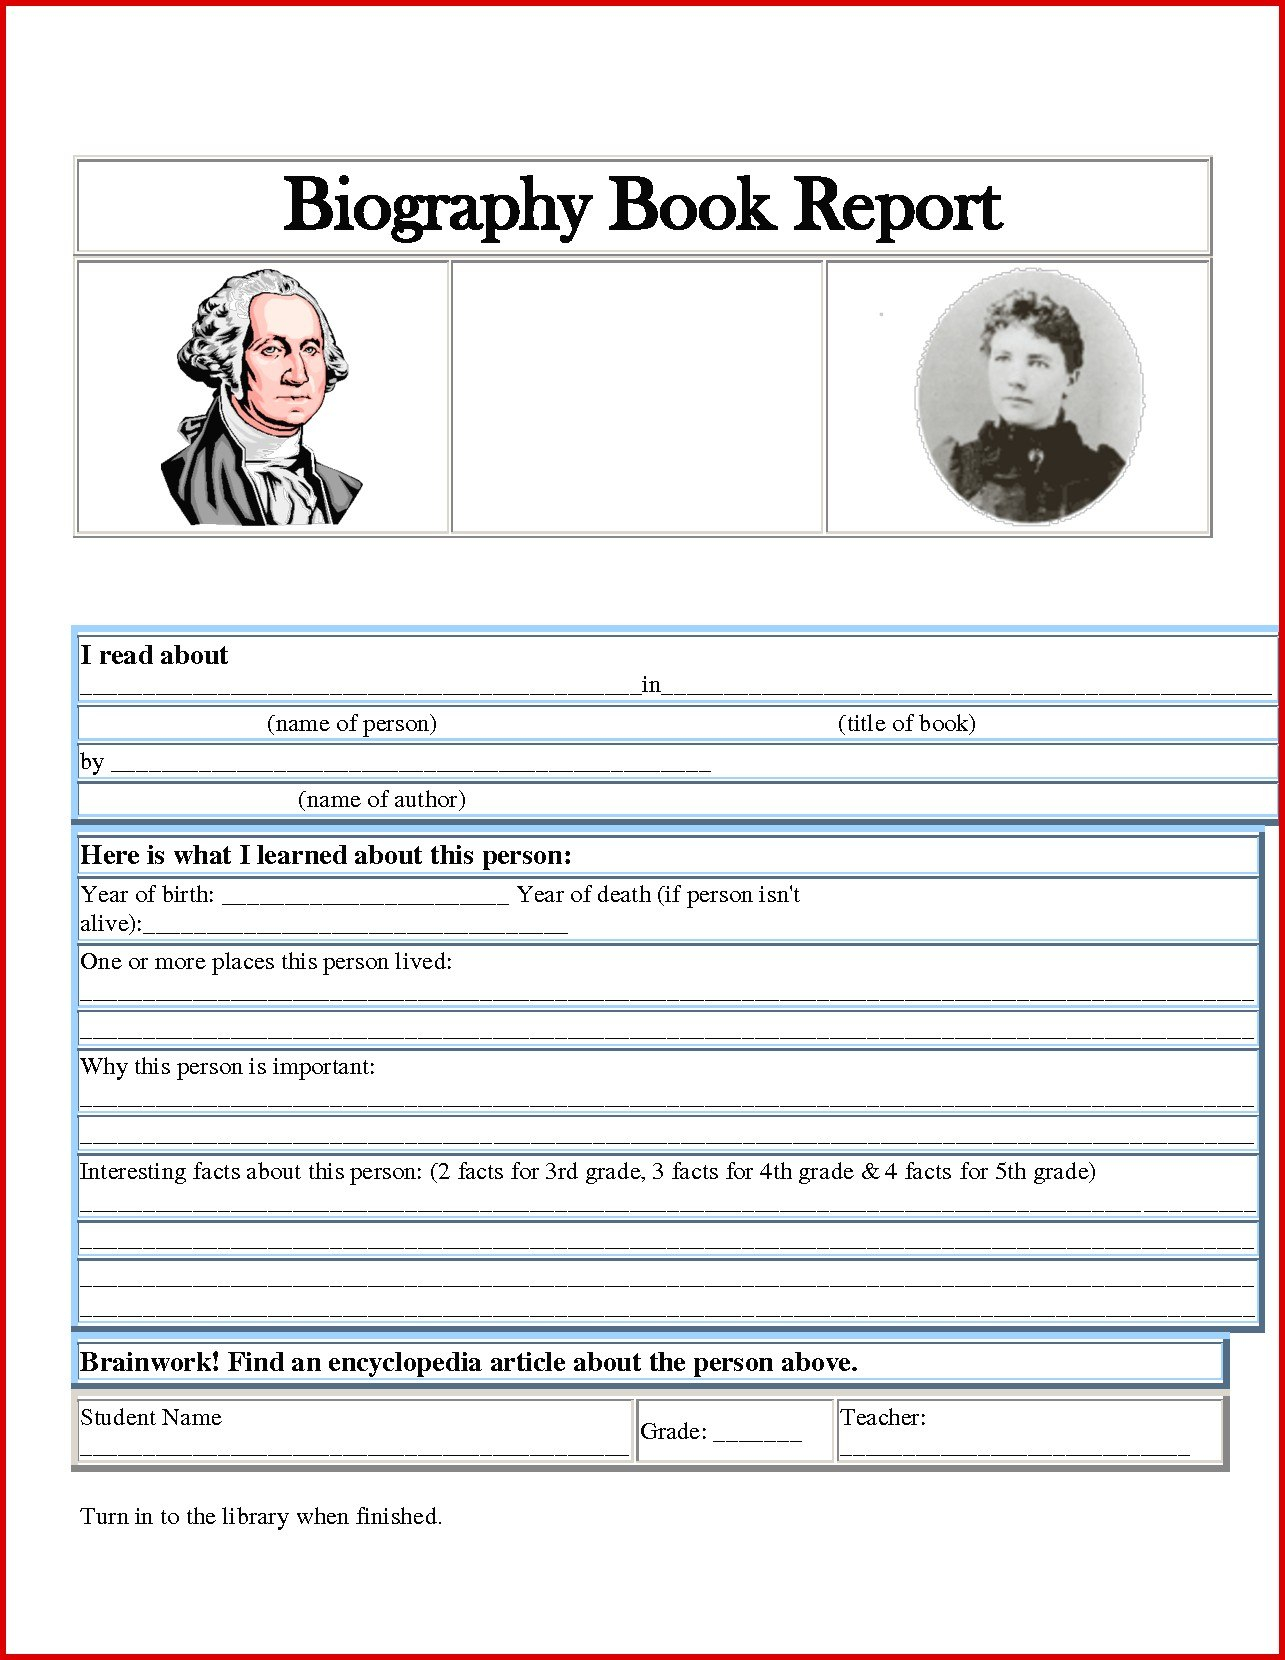 One Page Book Report Template New Awesome Author Biography Of Intended For One Page Book Report Template